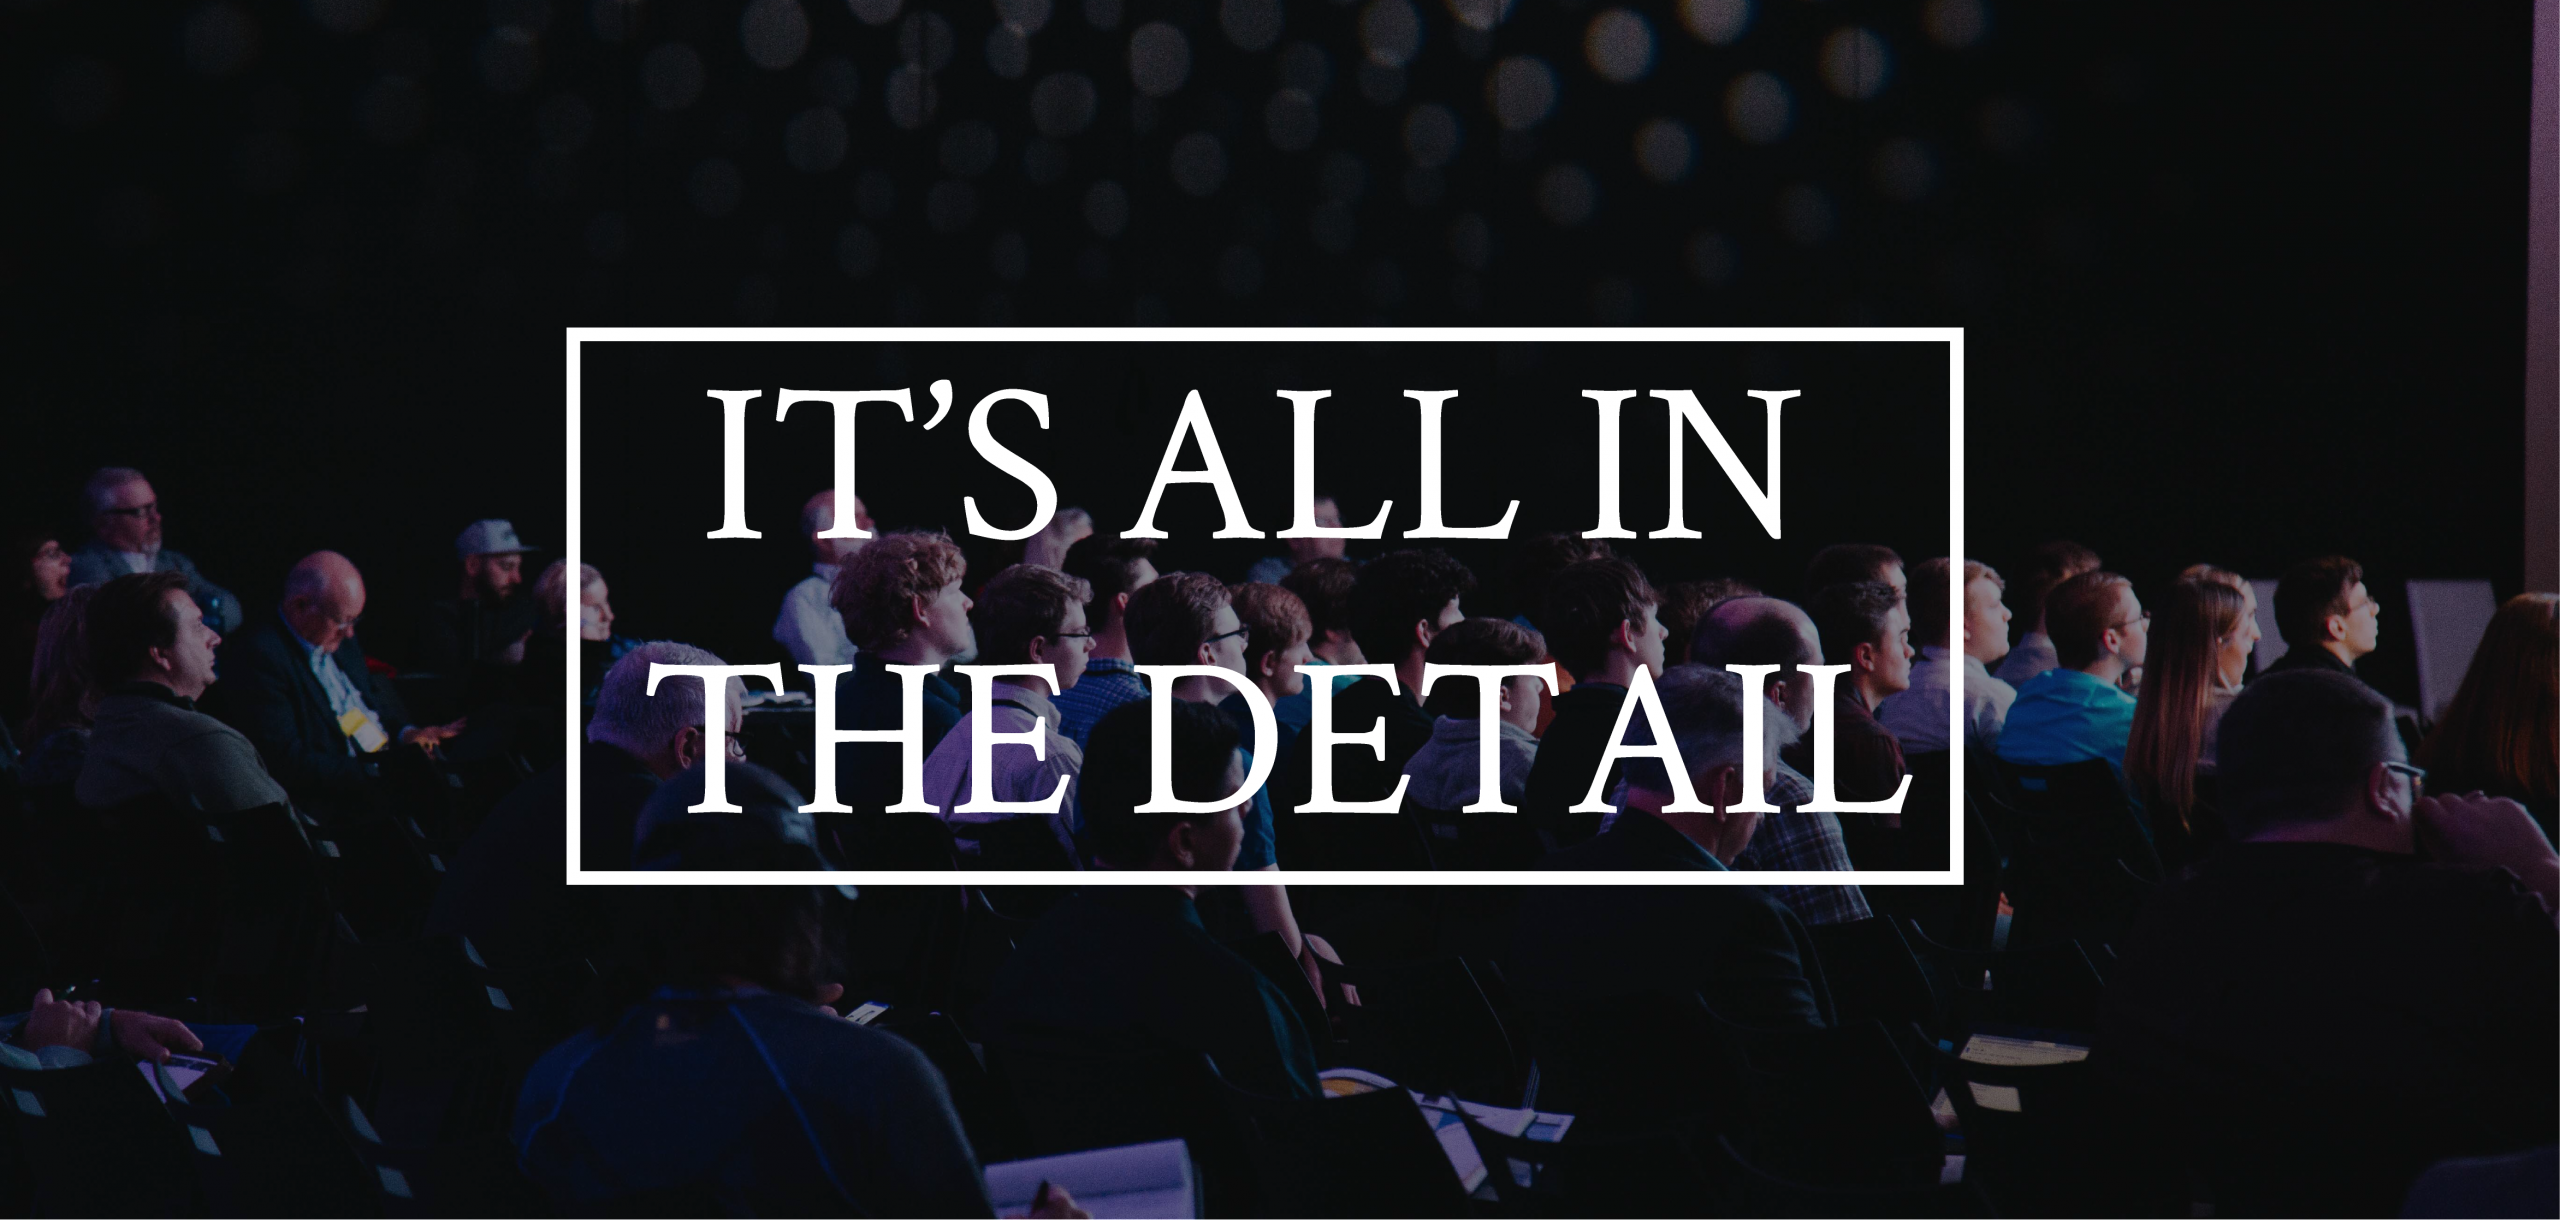 IT'S ALL IN THE DETAIL | DOT DASH EVENTS